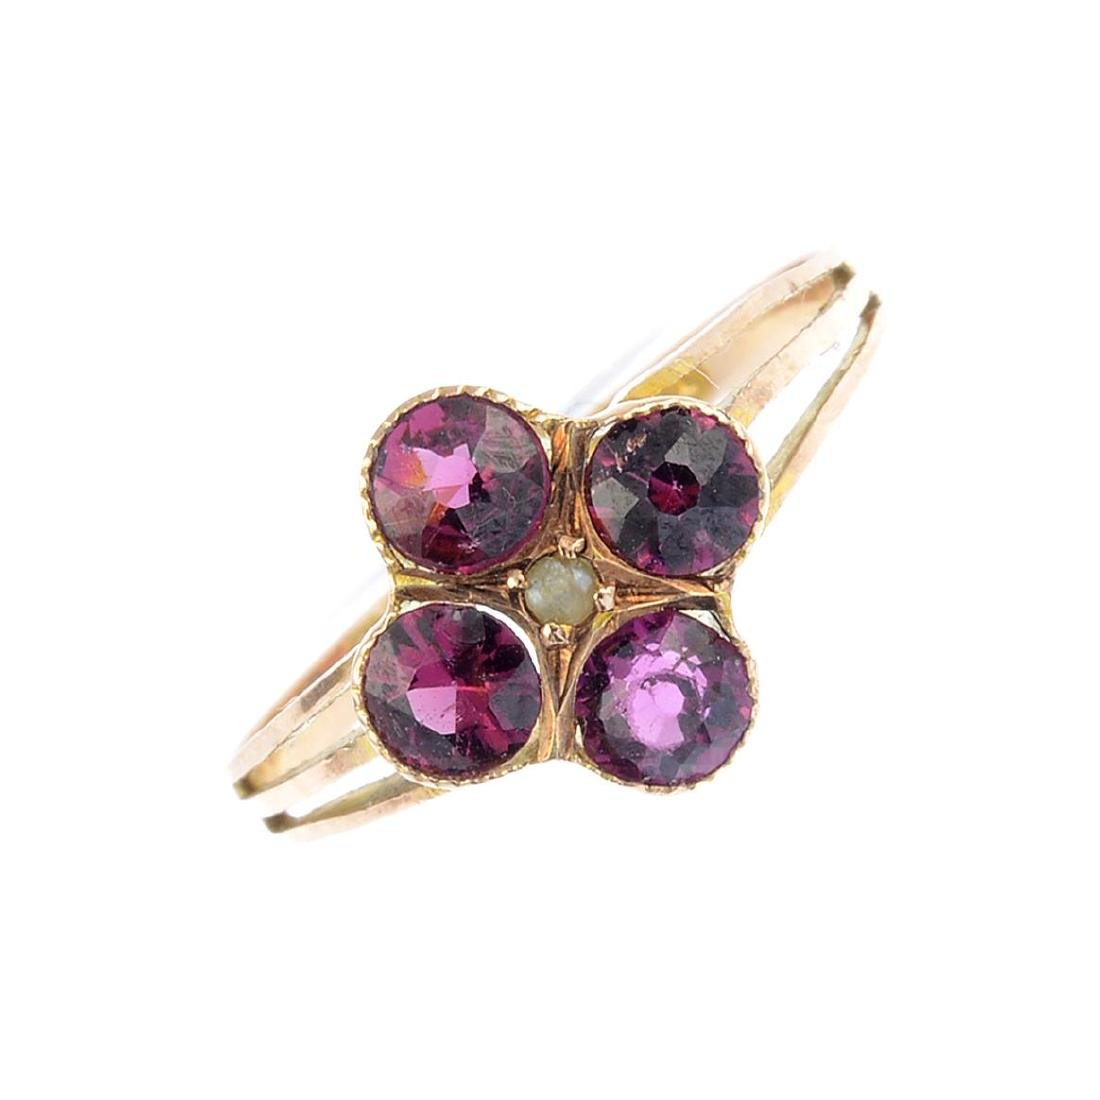 An early 20th century 9ct gold garnet and split pearl